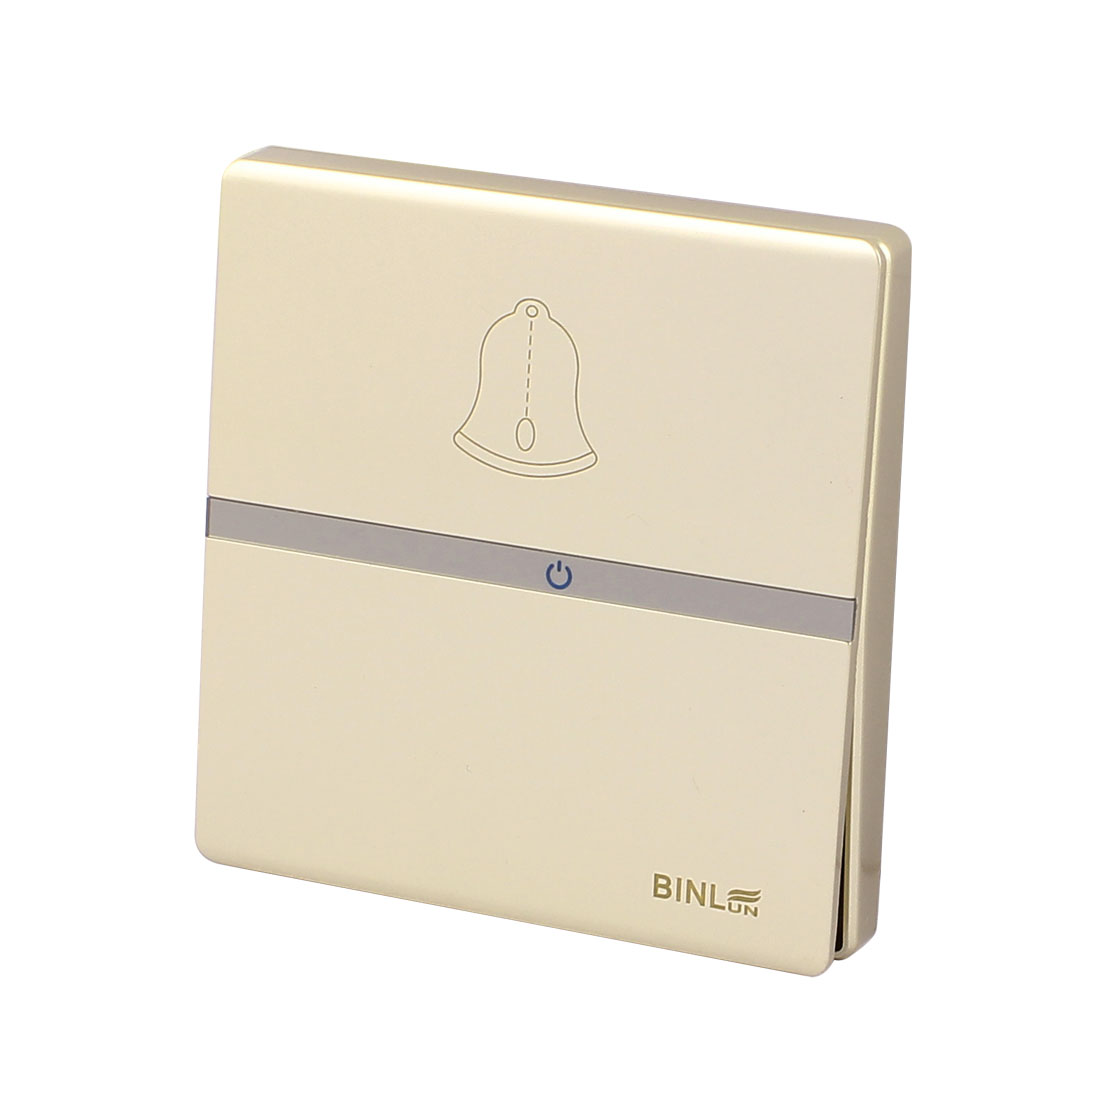 86x86mm Press Button Wall Mounted Doorbell Switch Square Panel AC 220V 10A Golden